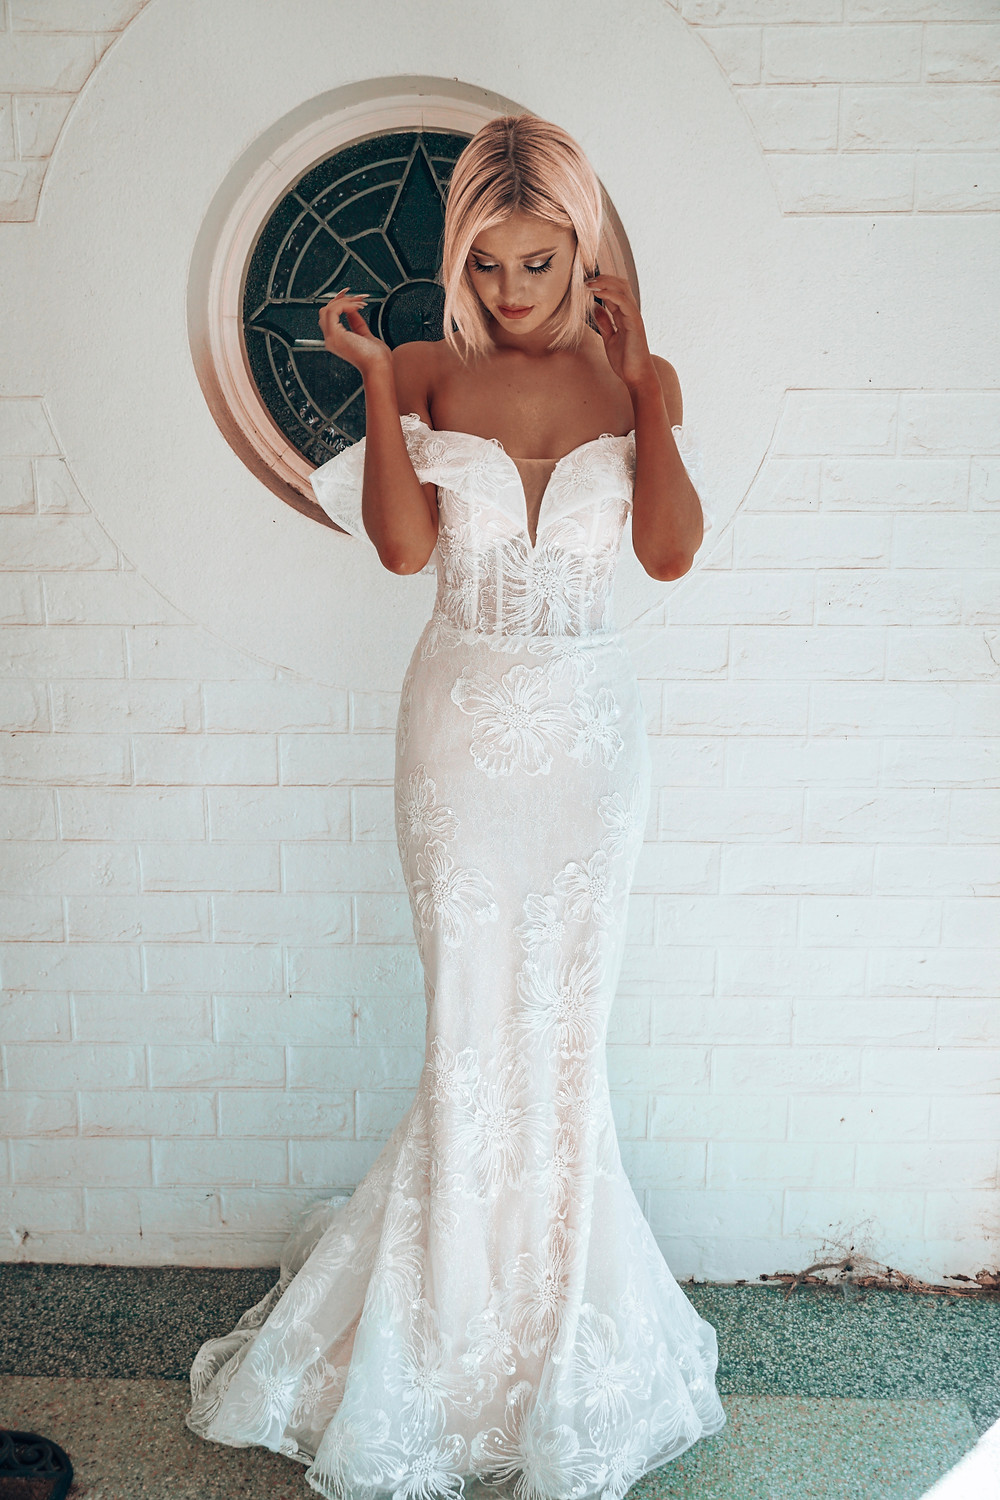 Chloe by Rachel Rose. Wedding dress suggestion for hourglass shaped bride. Off shoulder mermaid cut with floral detail.